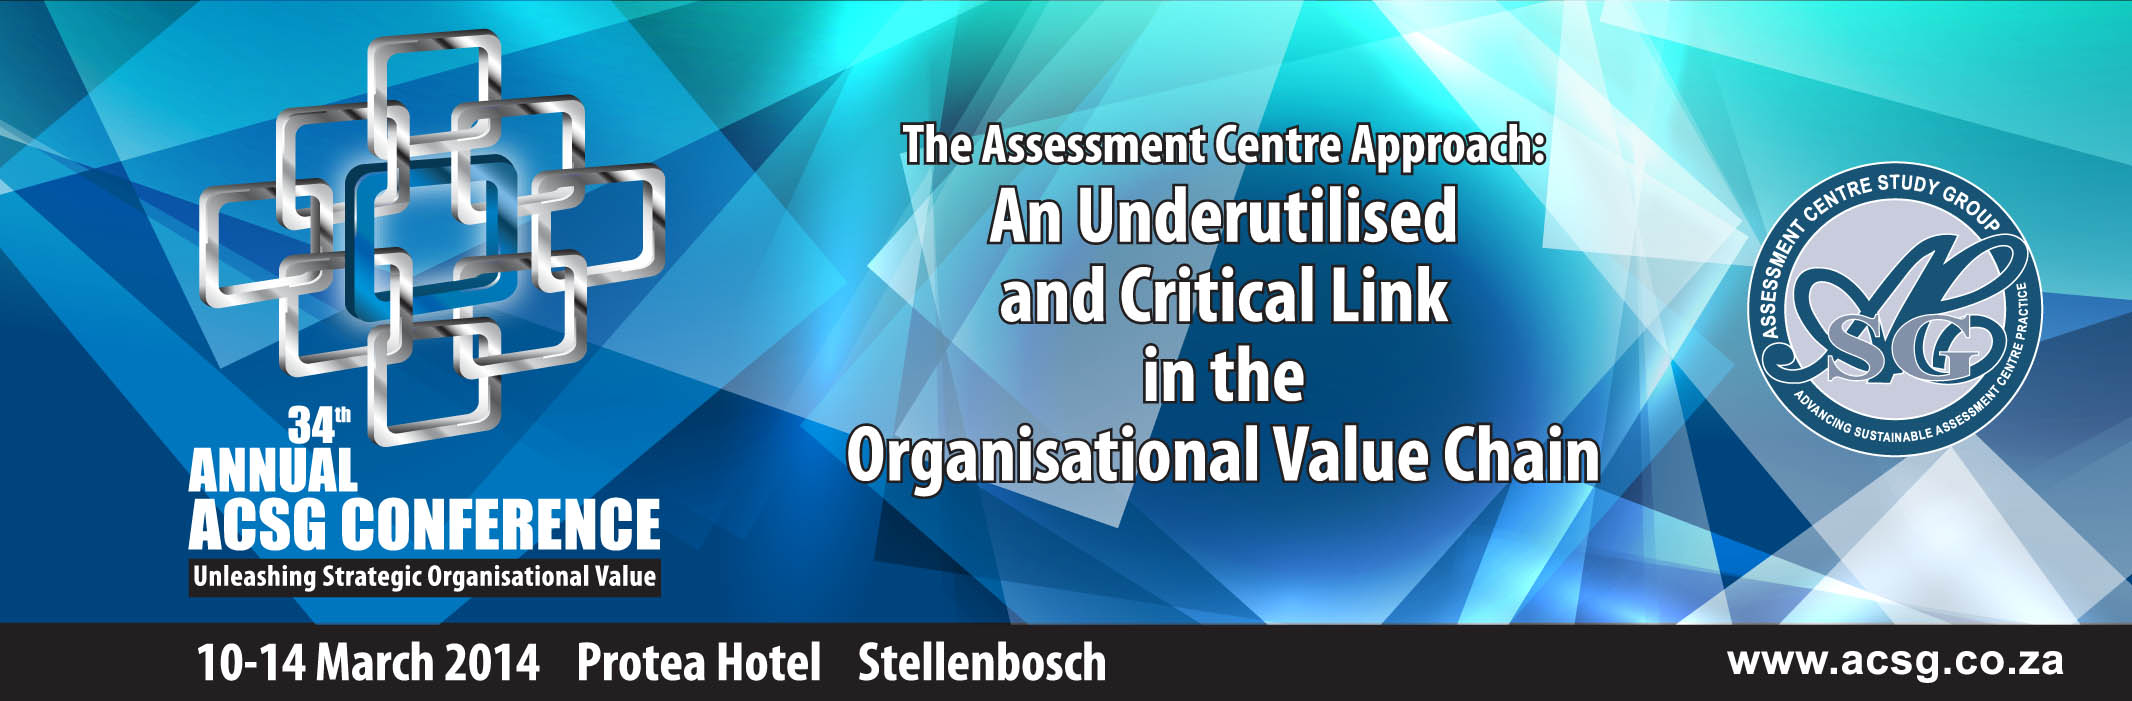 The Assessment Centre Approach: An Underutilised and Critical Link in the Organisational Value Chain